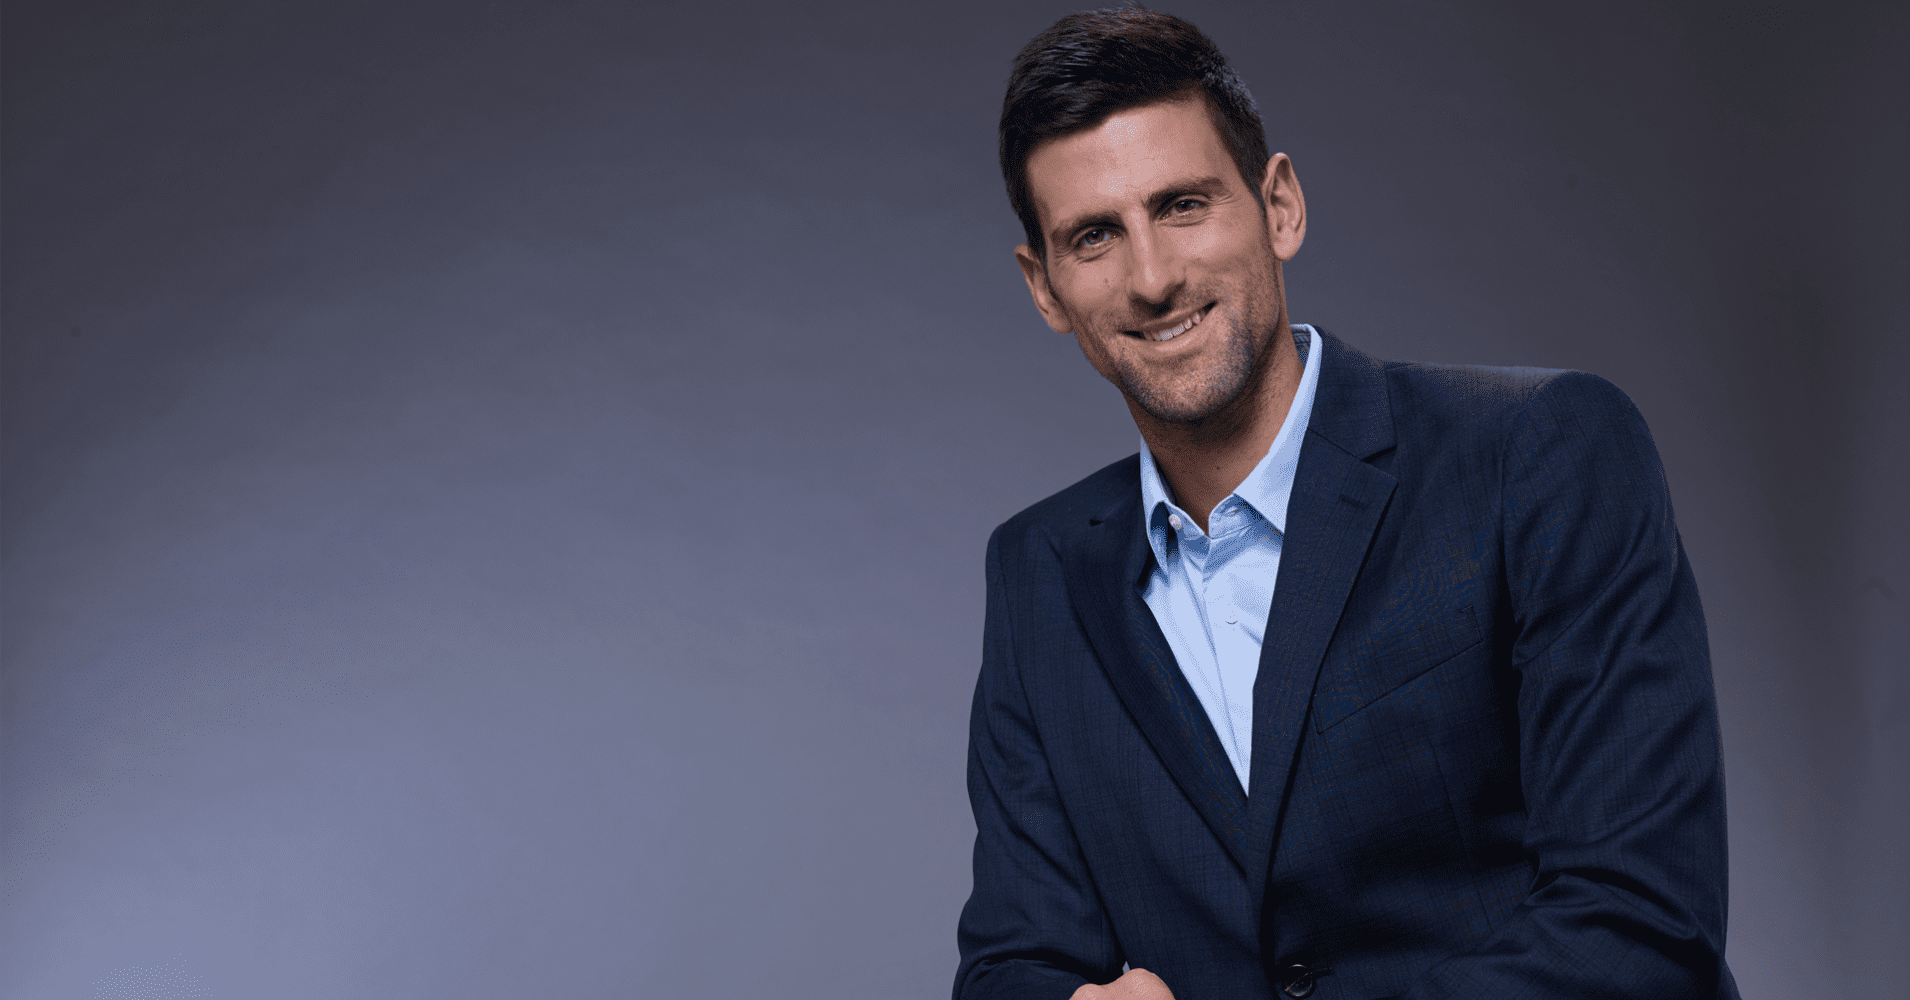 Novak Djokovic: number one men's tennis player and charity founder